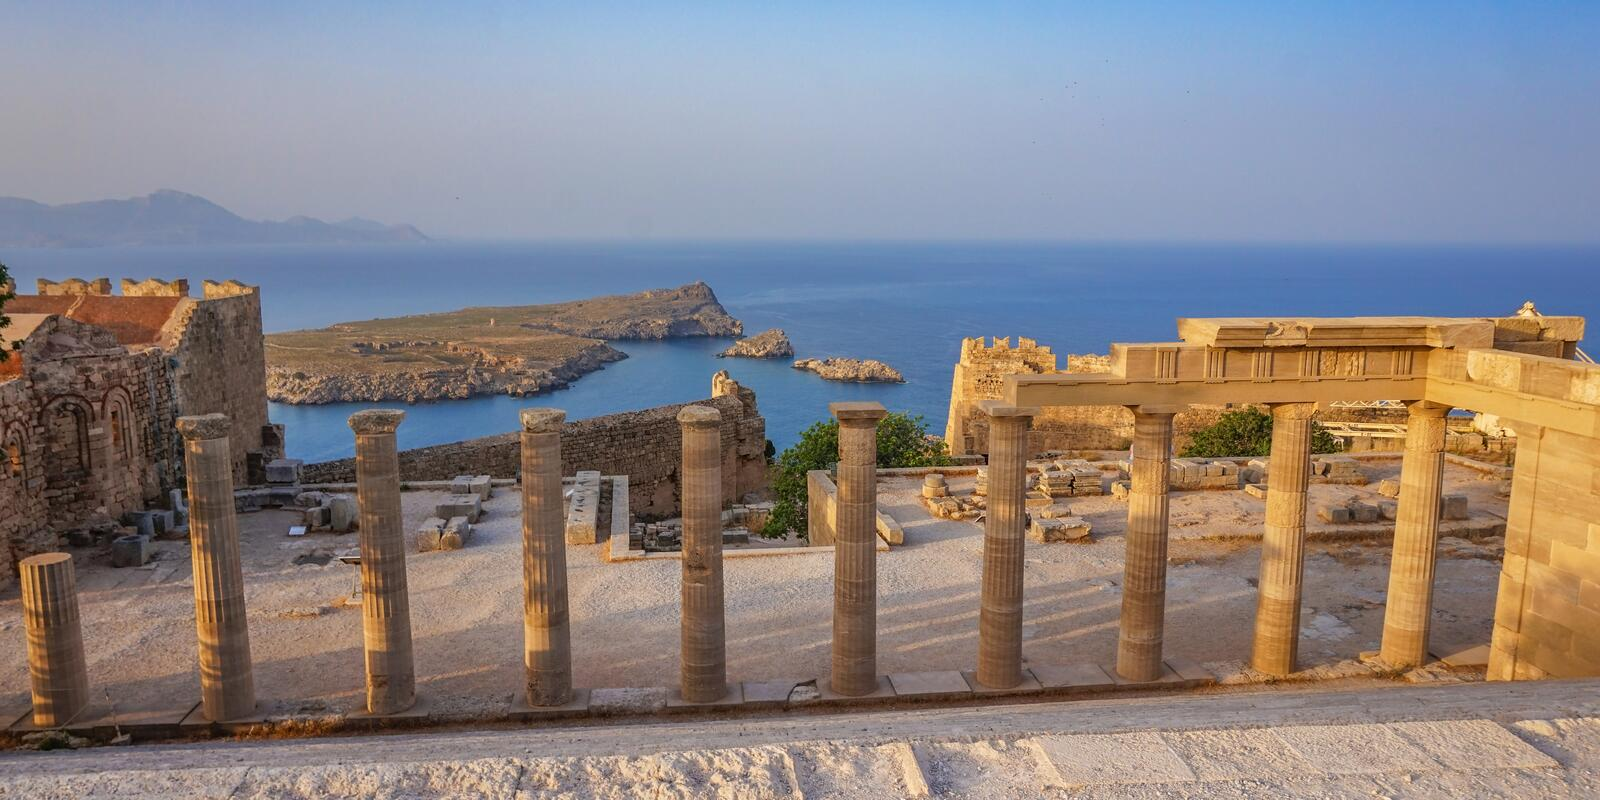 Rhodes and Symi, magical islands: sea, patterns of colors, jewels of the past